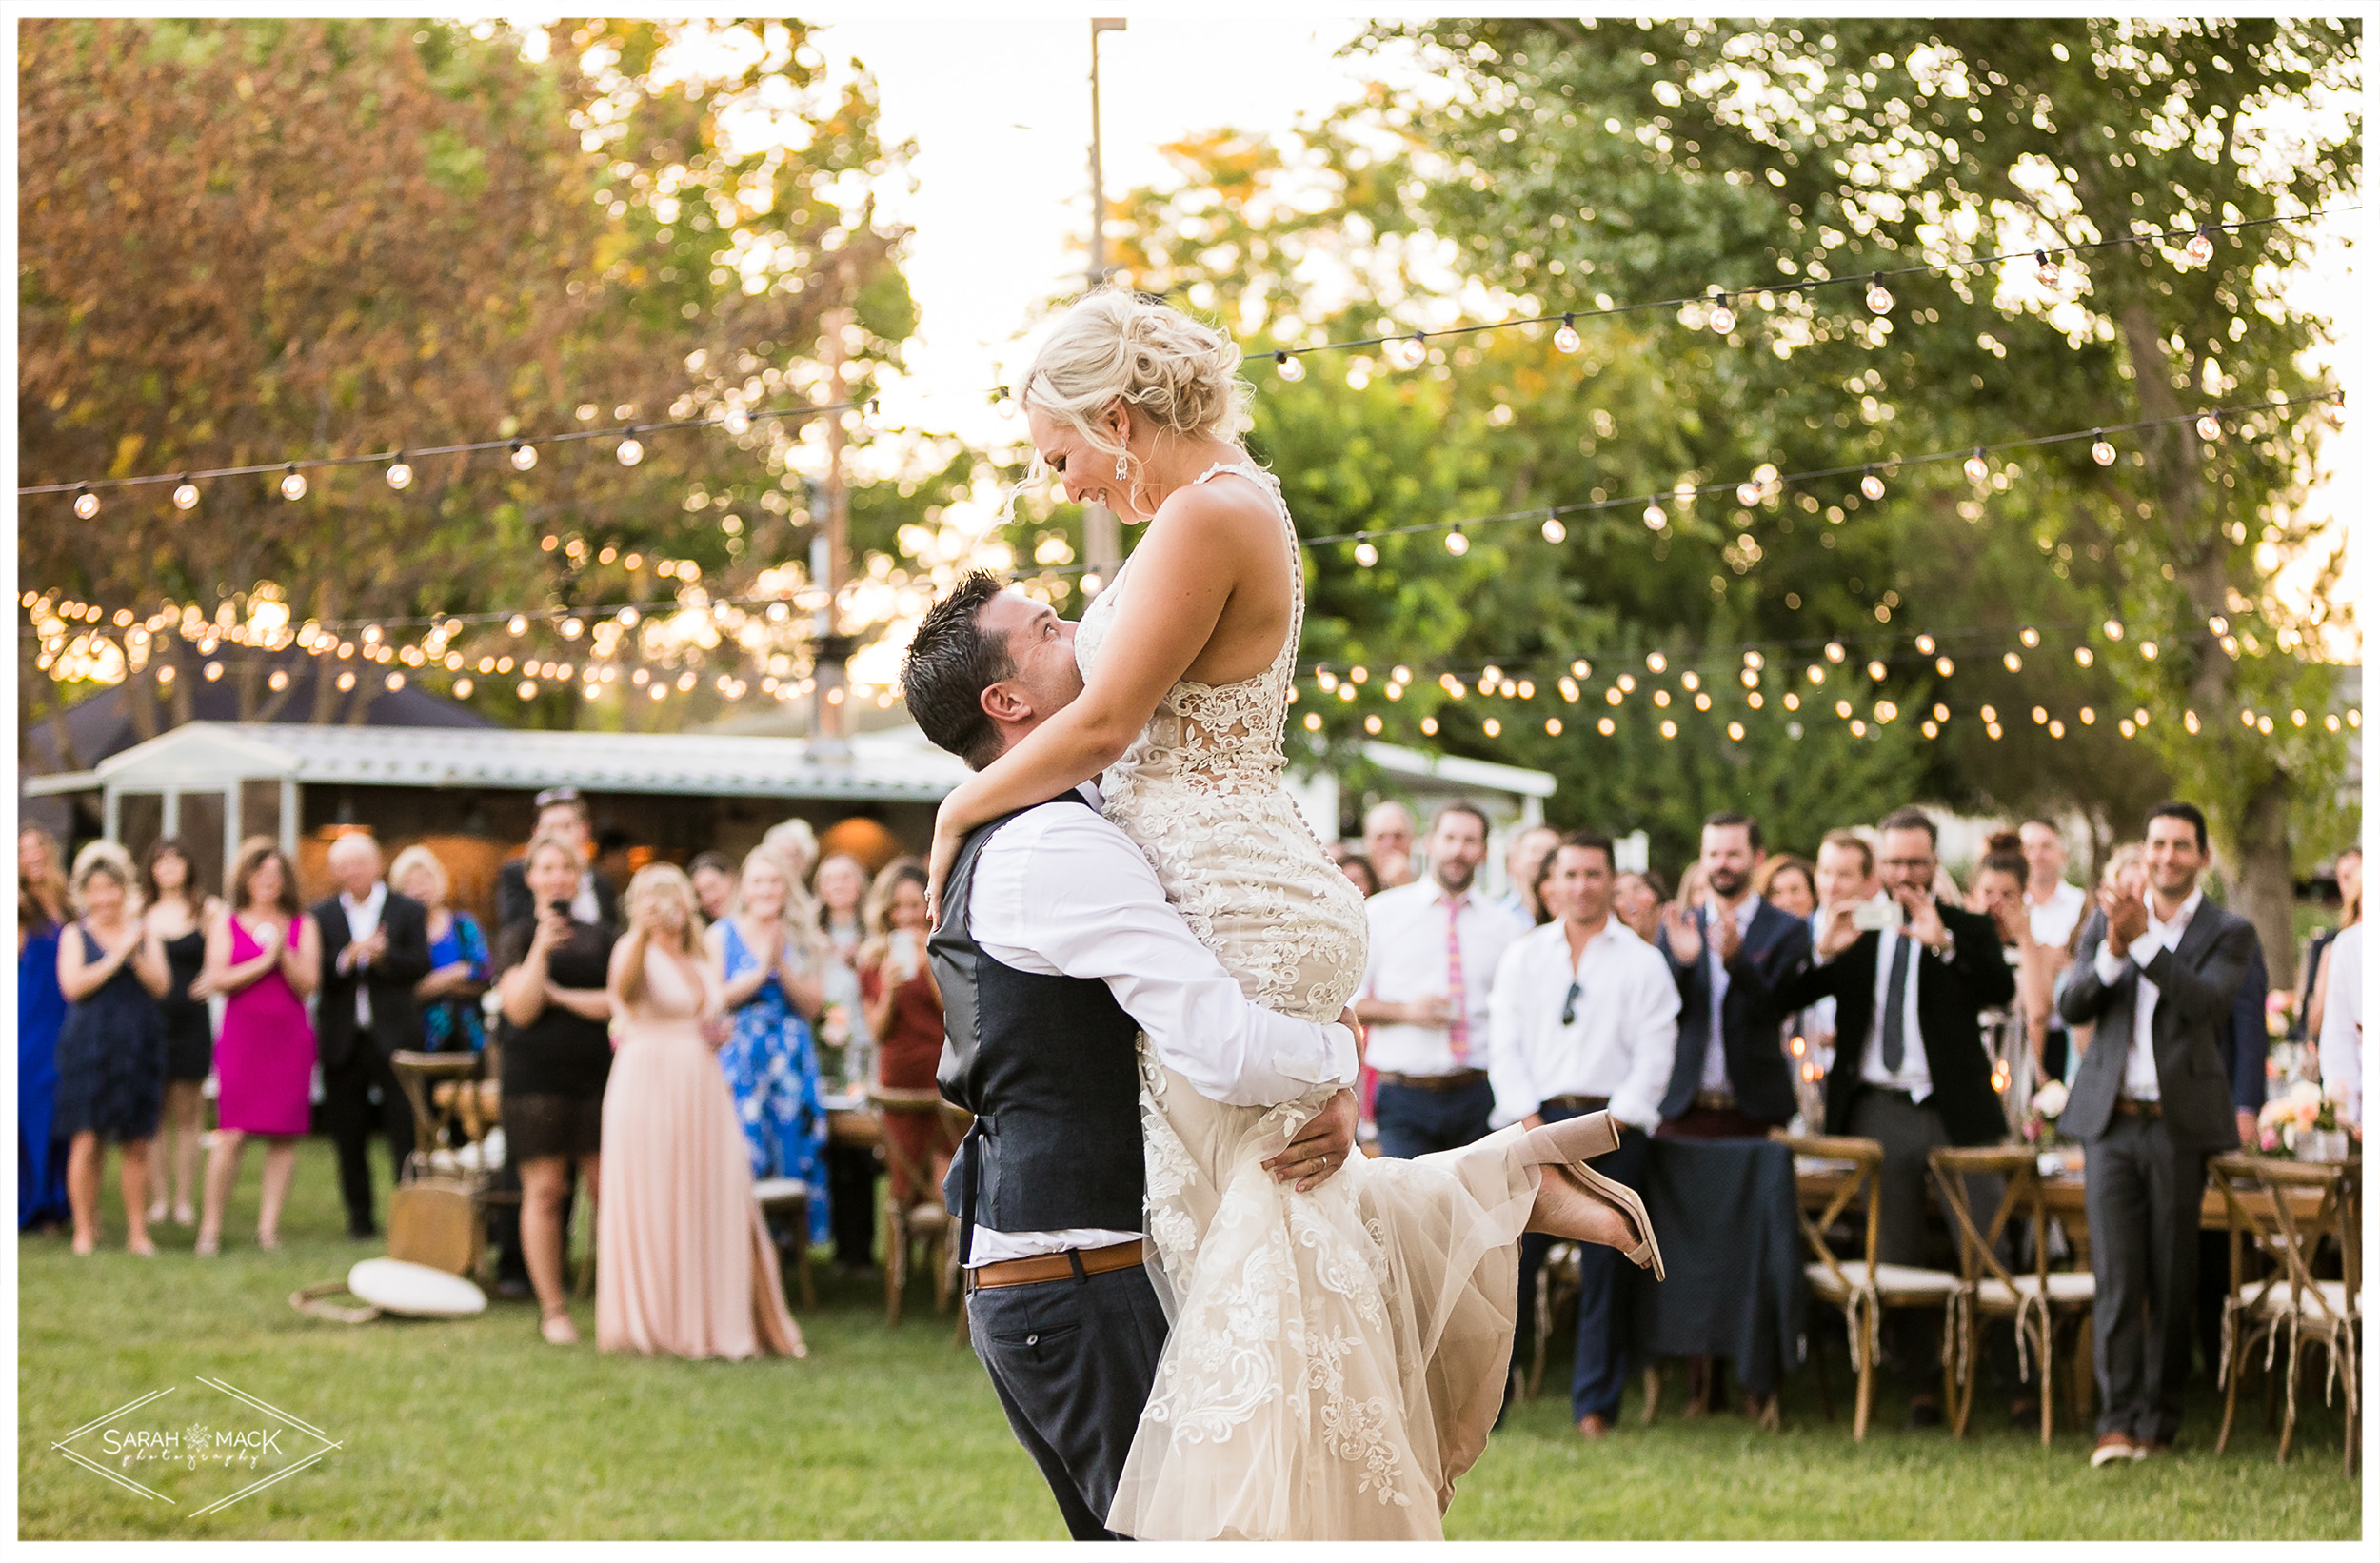 MA-Chandler-Ranch-Paso-Robles-Wedding-Photography-75.jpg